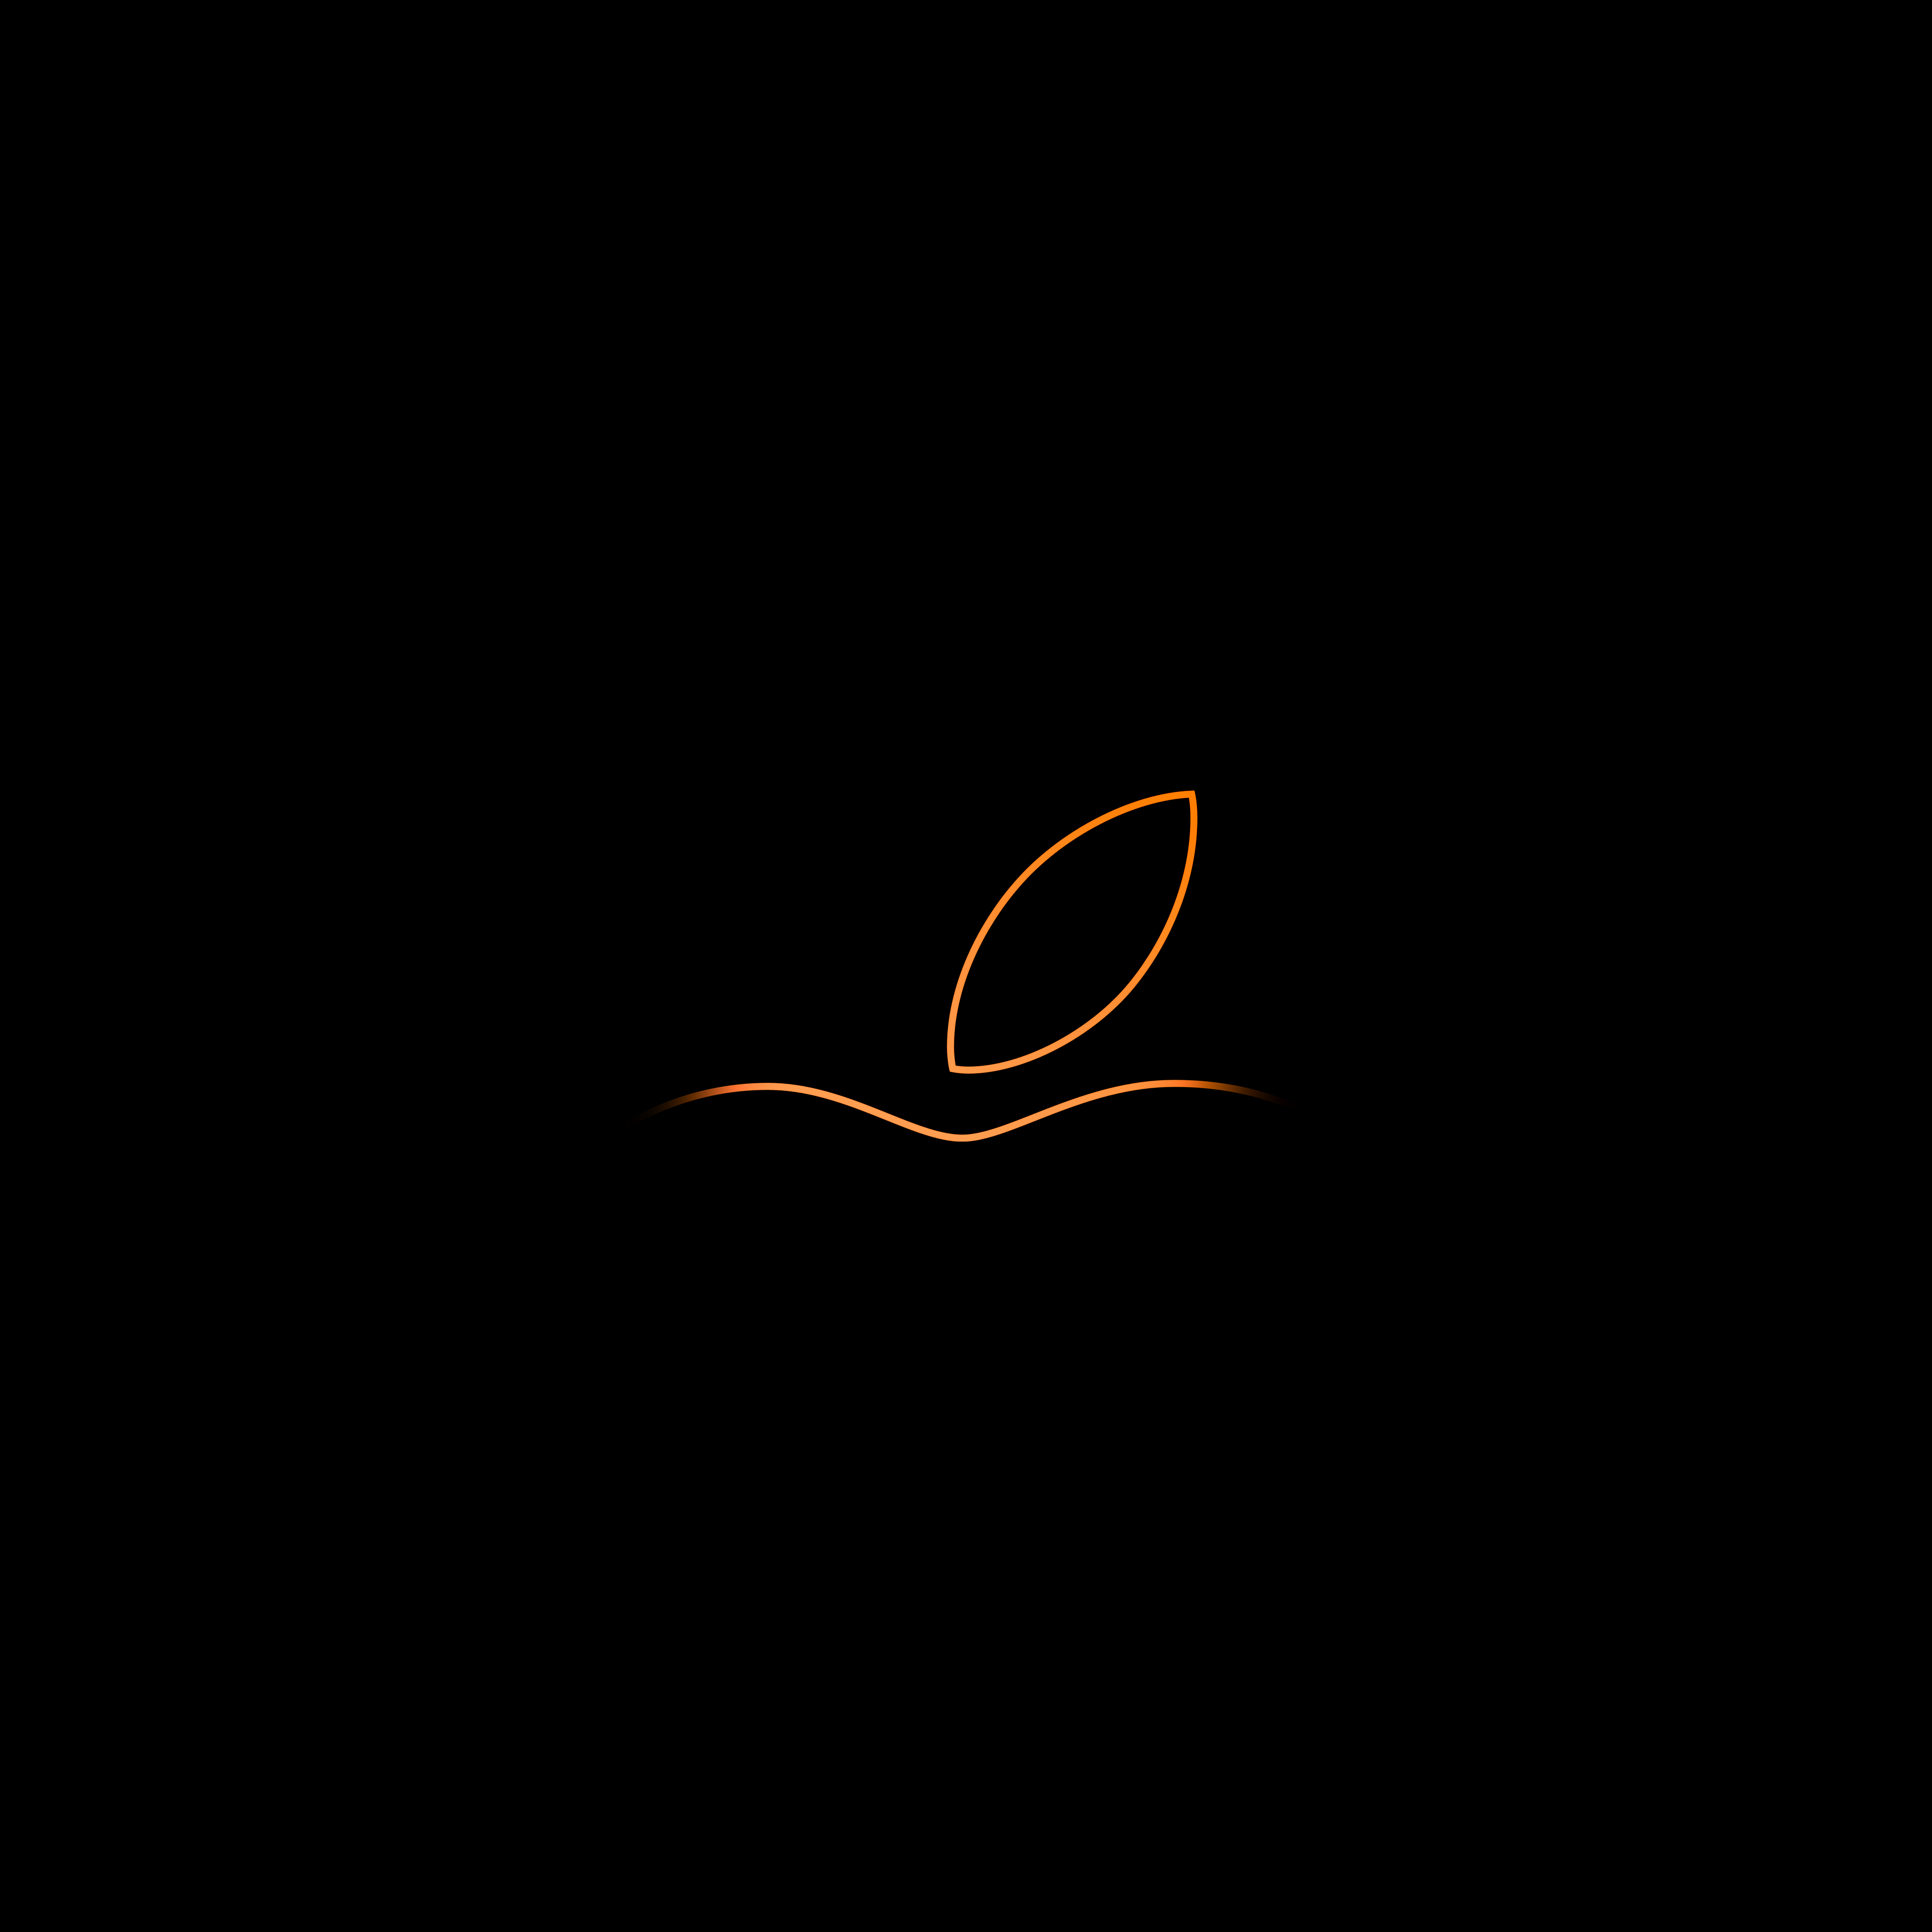 Another Apple Event Wallpaper